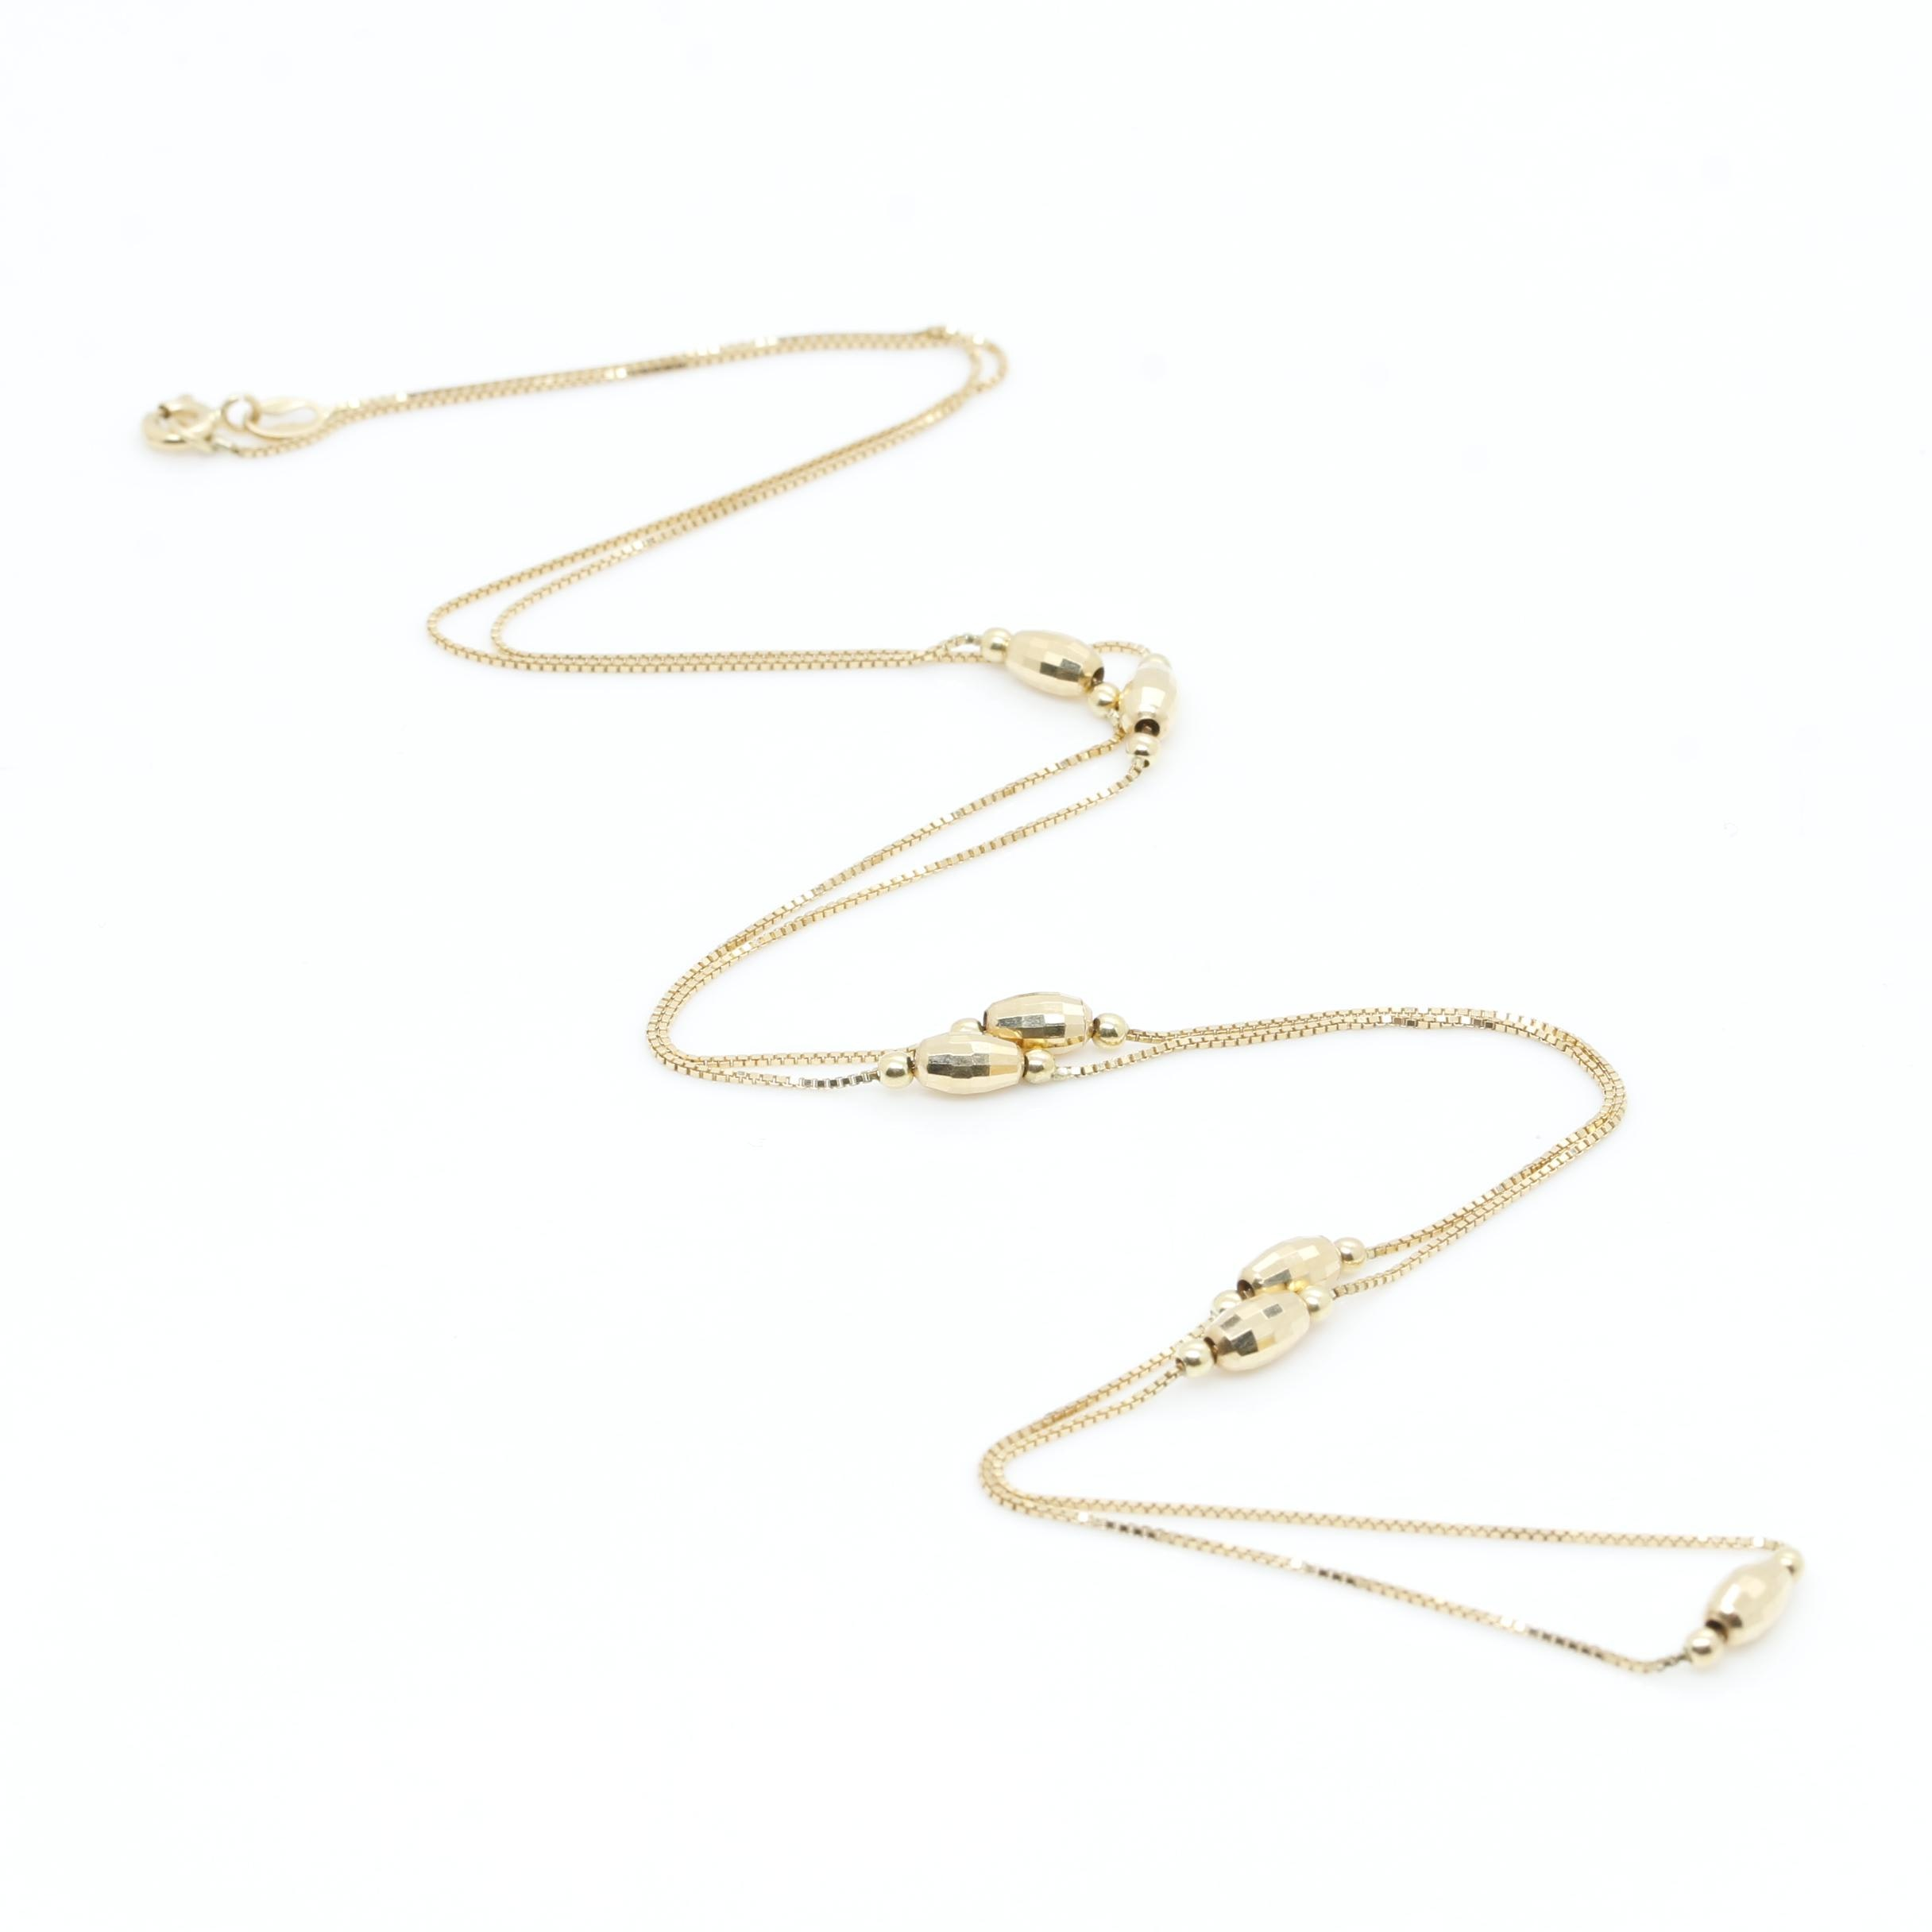 Milor 18K Yellow Gold Necklace